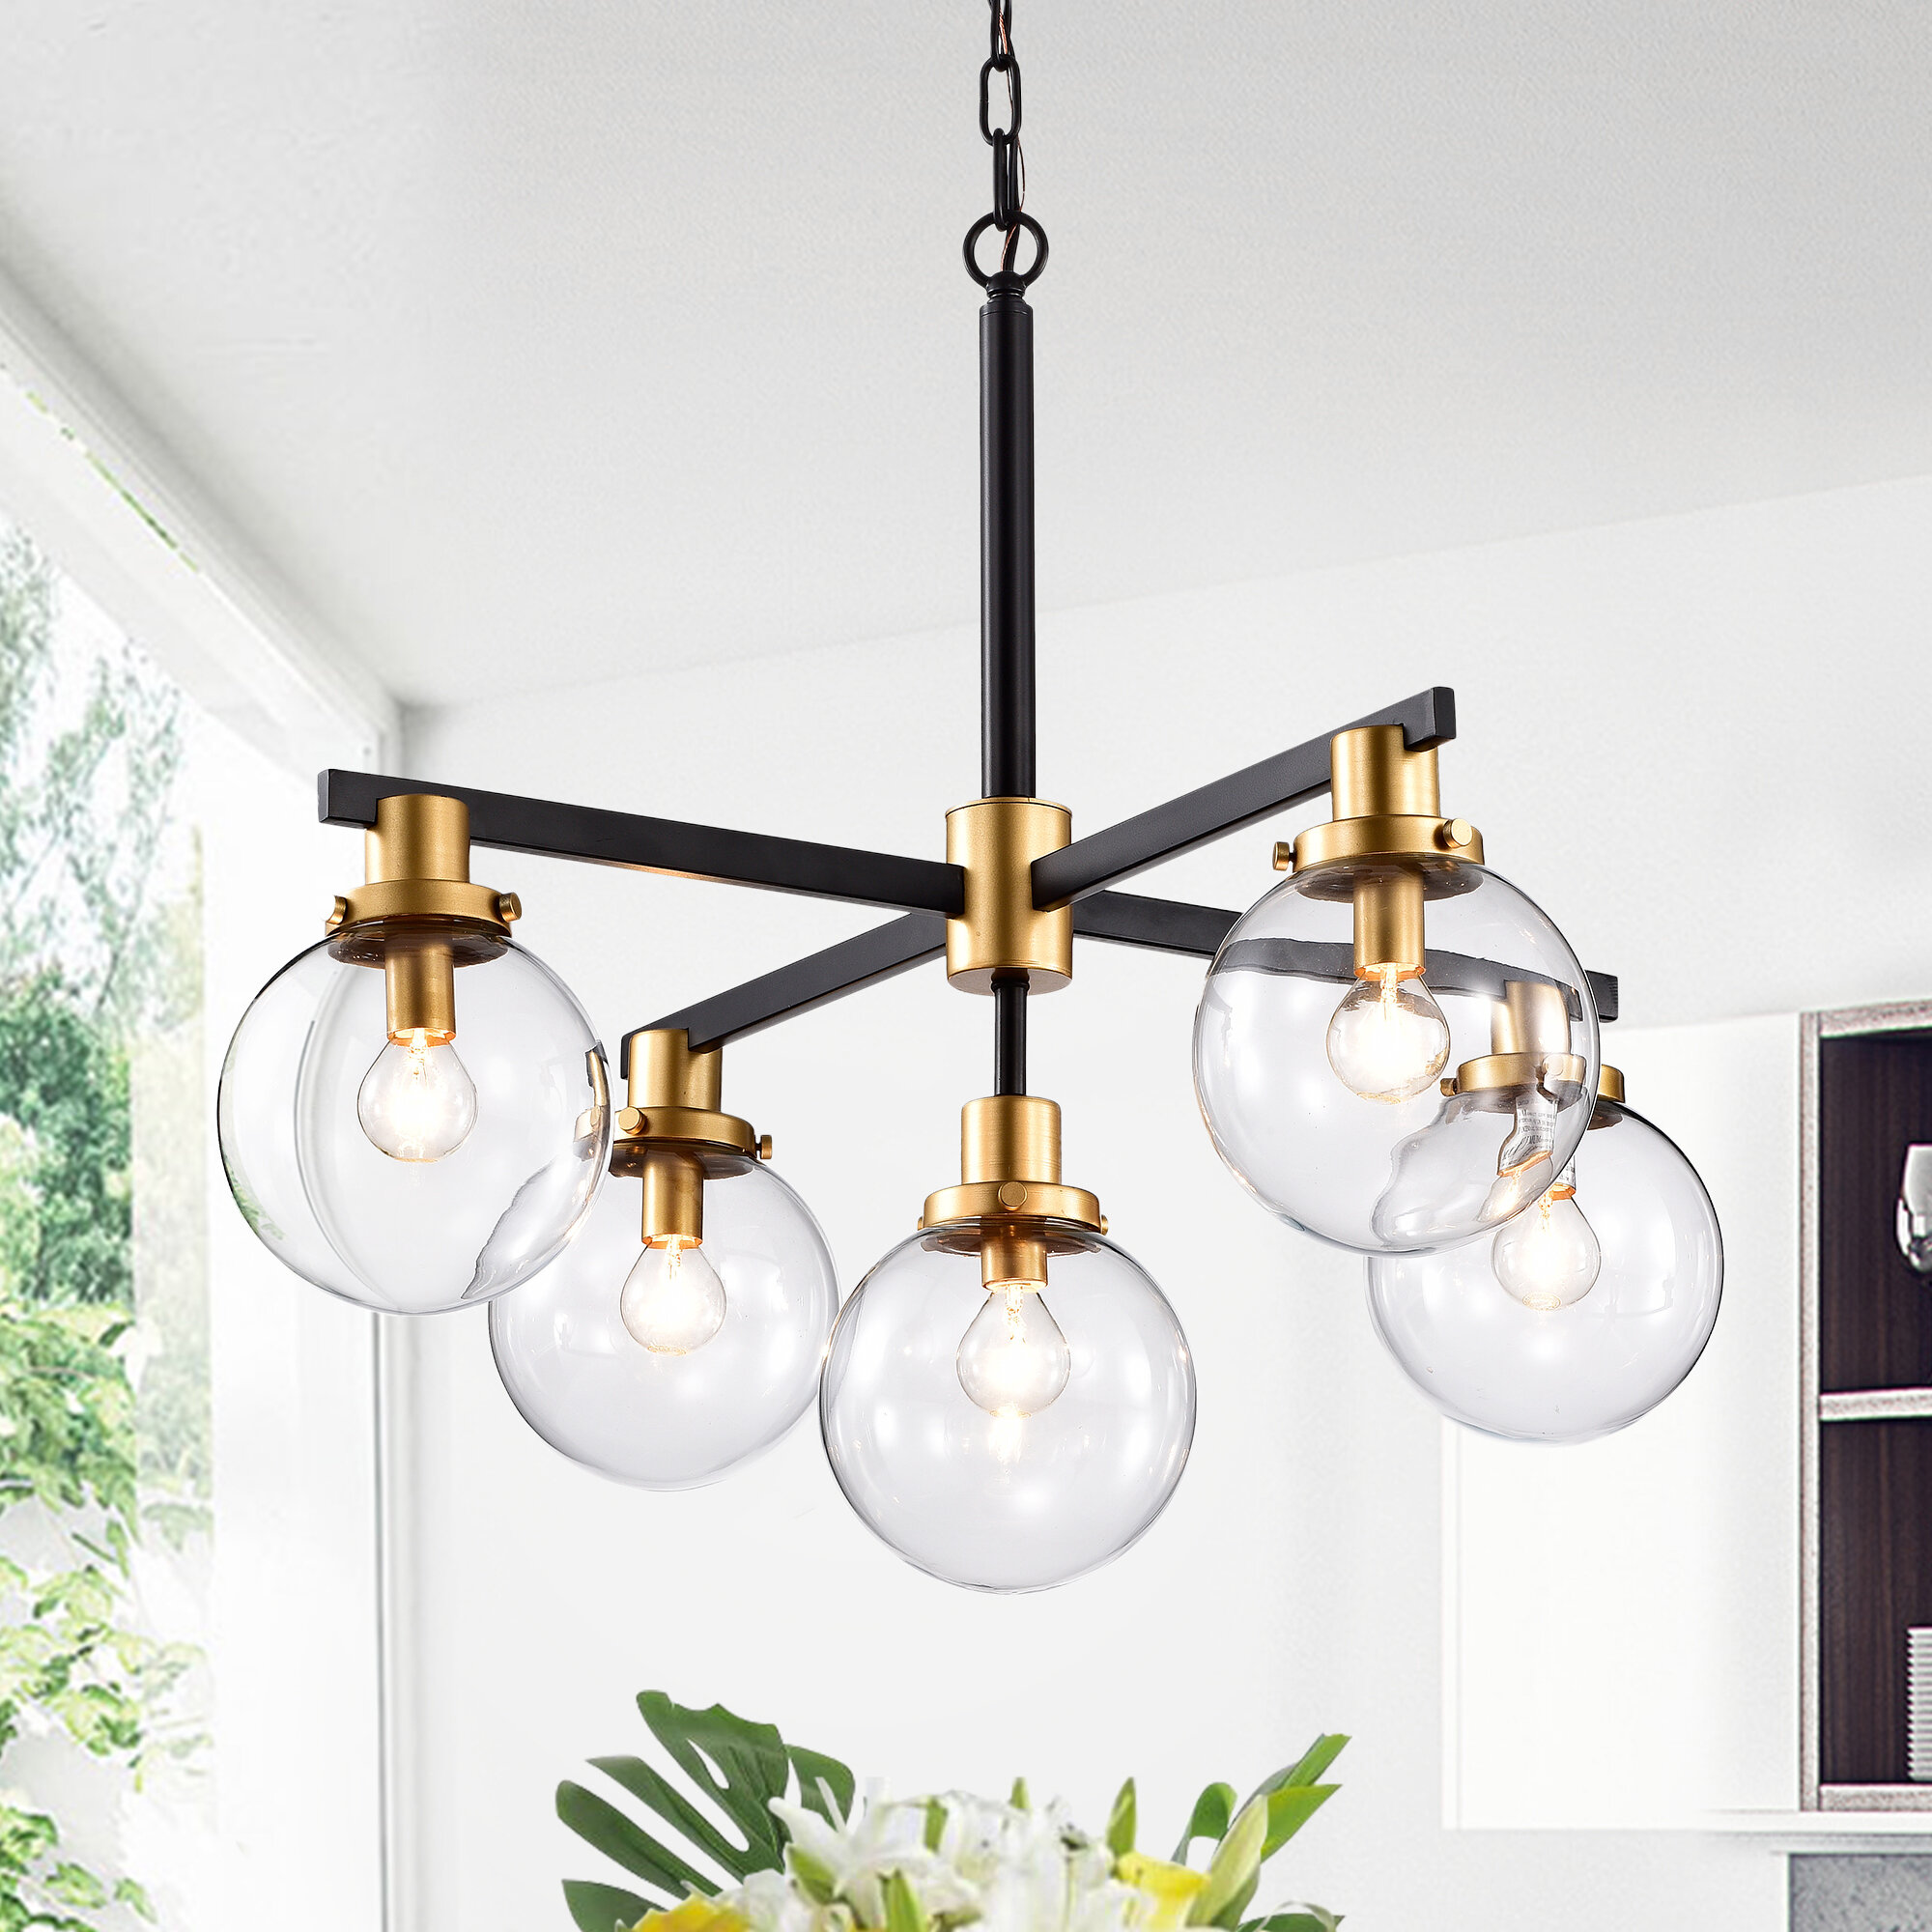 Gold Finish George Oliver Chandeliers You Ll Love In 2021 Wayfair